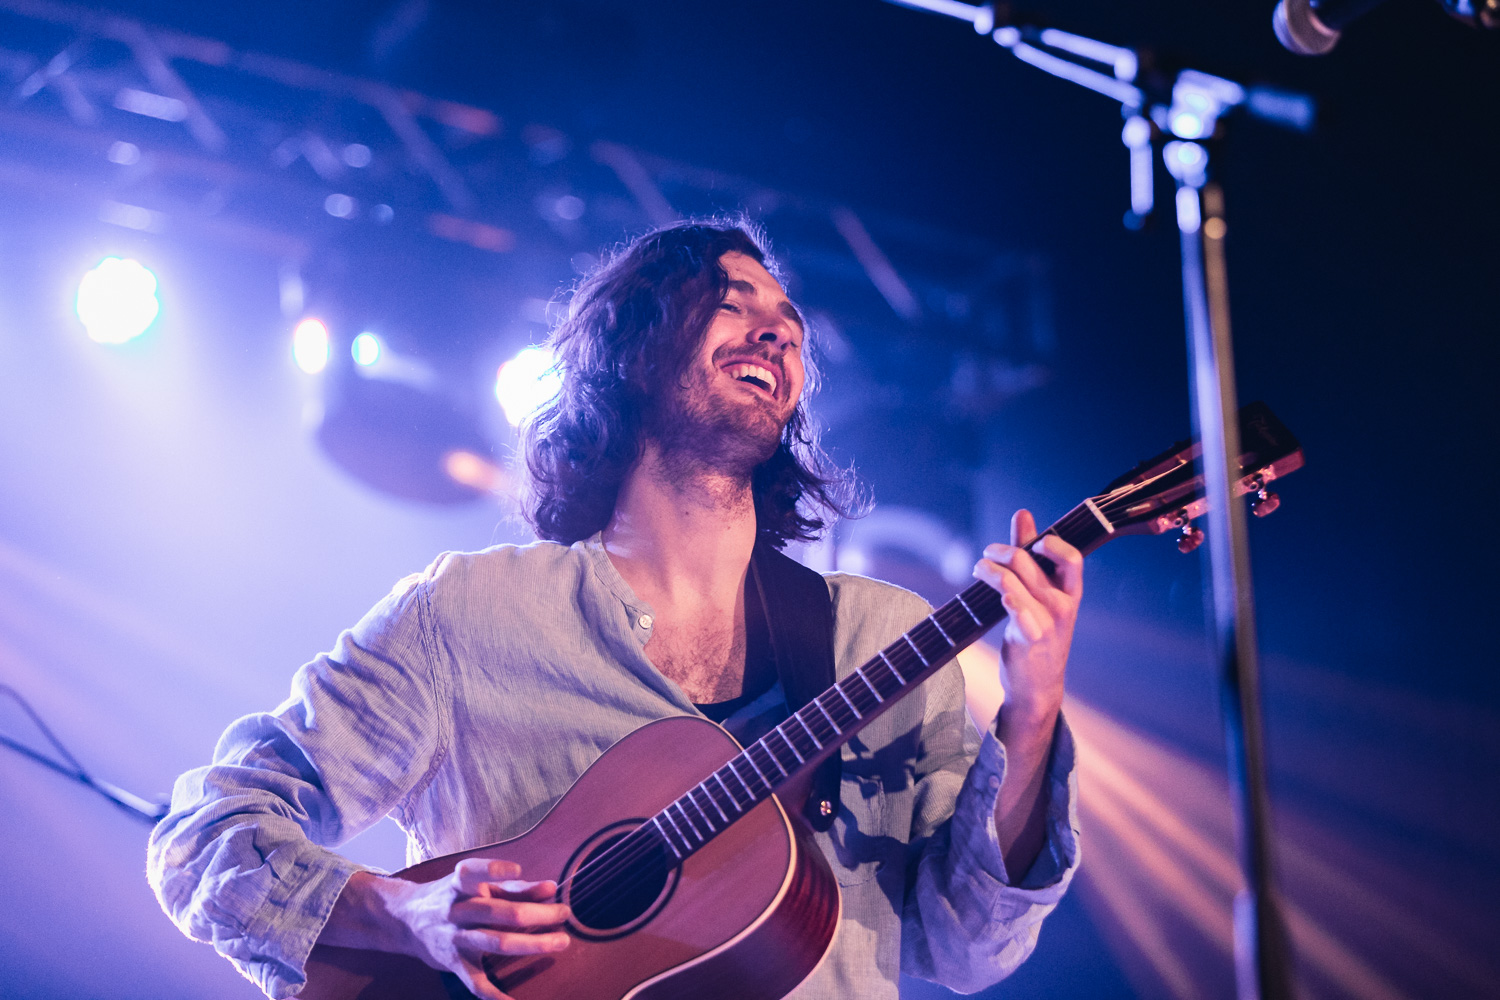 Part minstril, part folk-rock gangster Irish angel, Hozier playing in Salt Lake City. Photo: @Lmsorenson